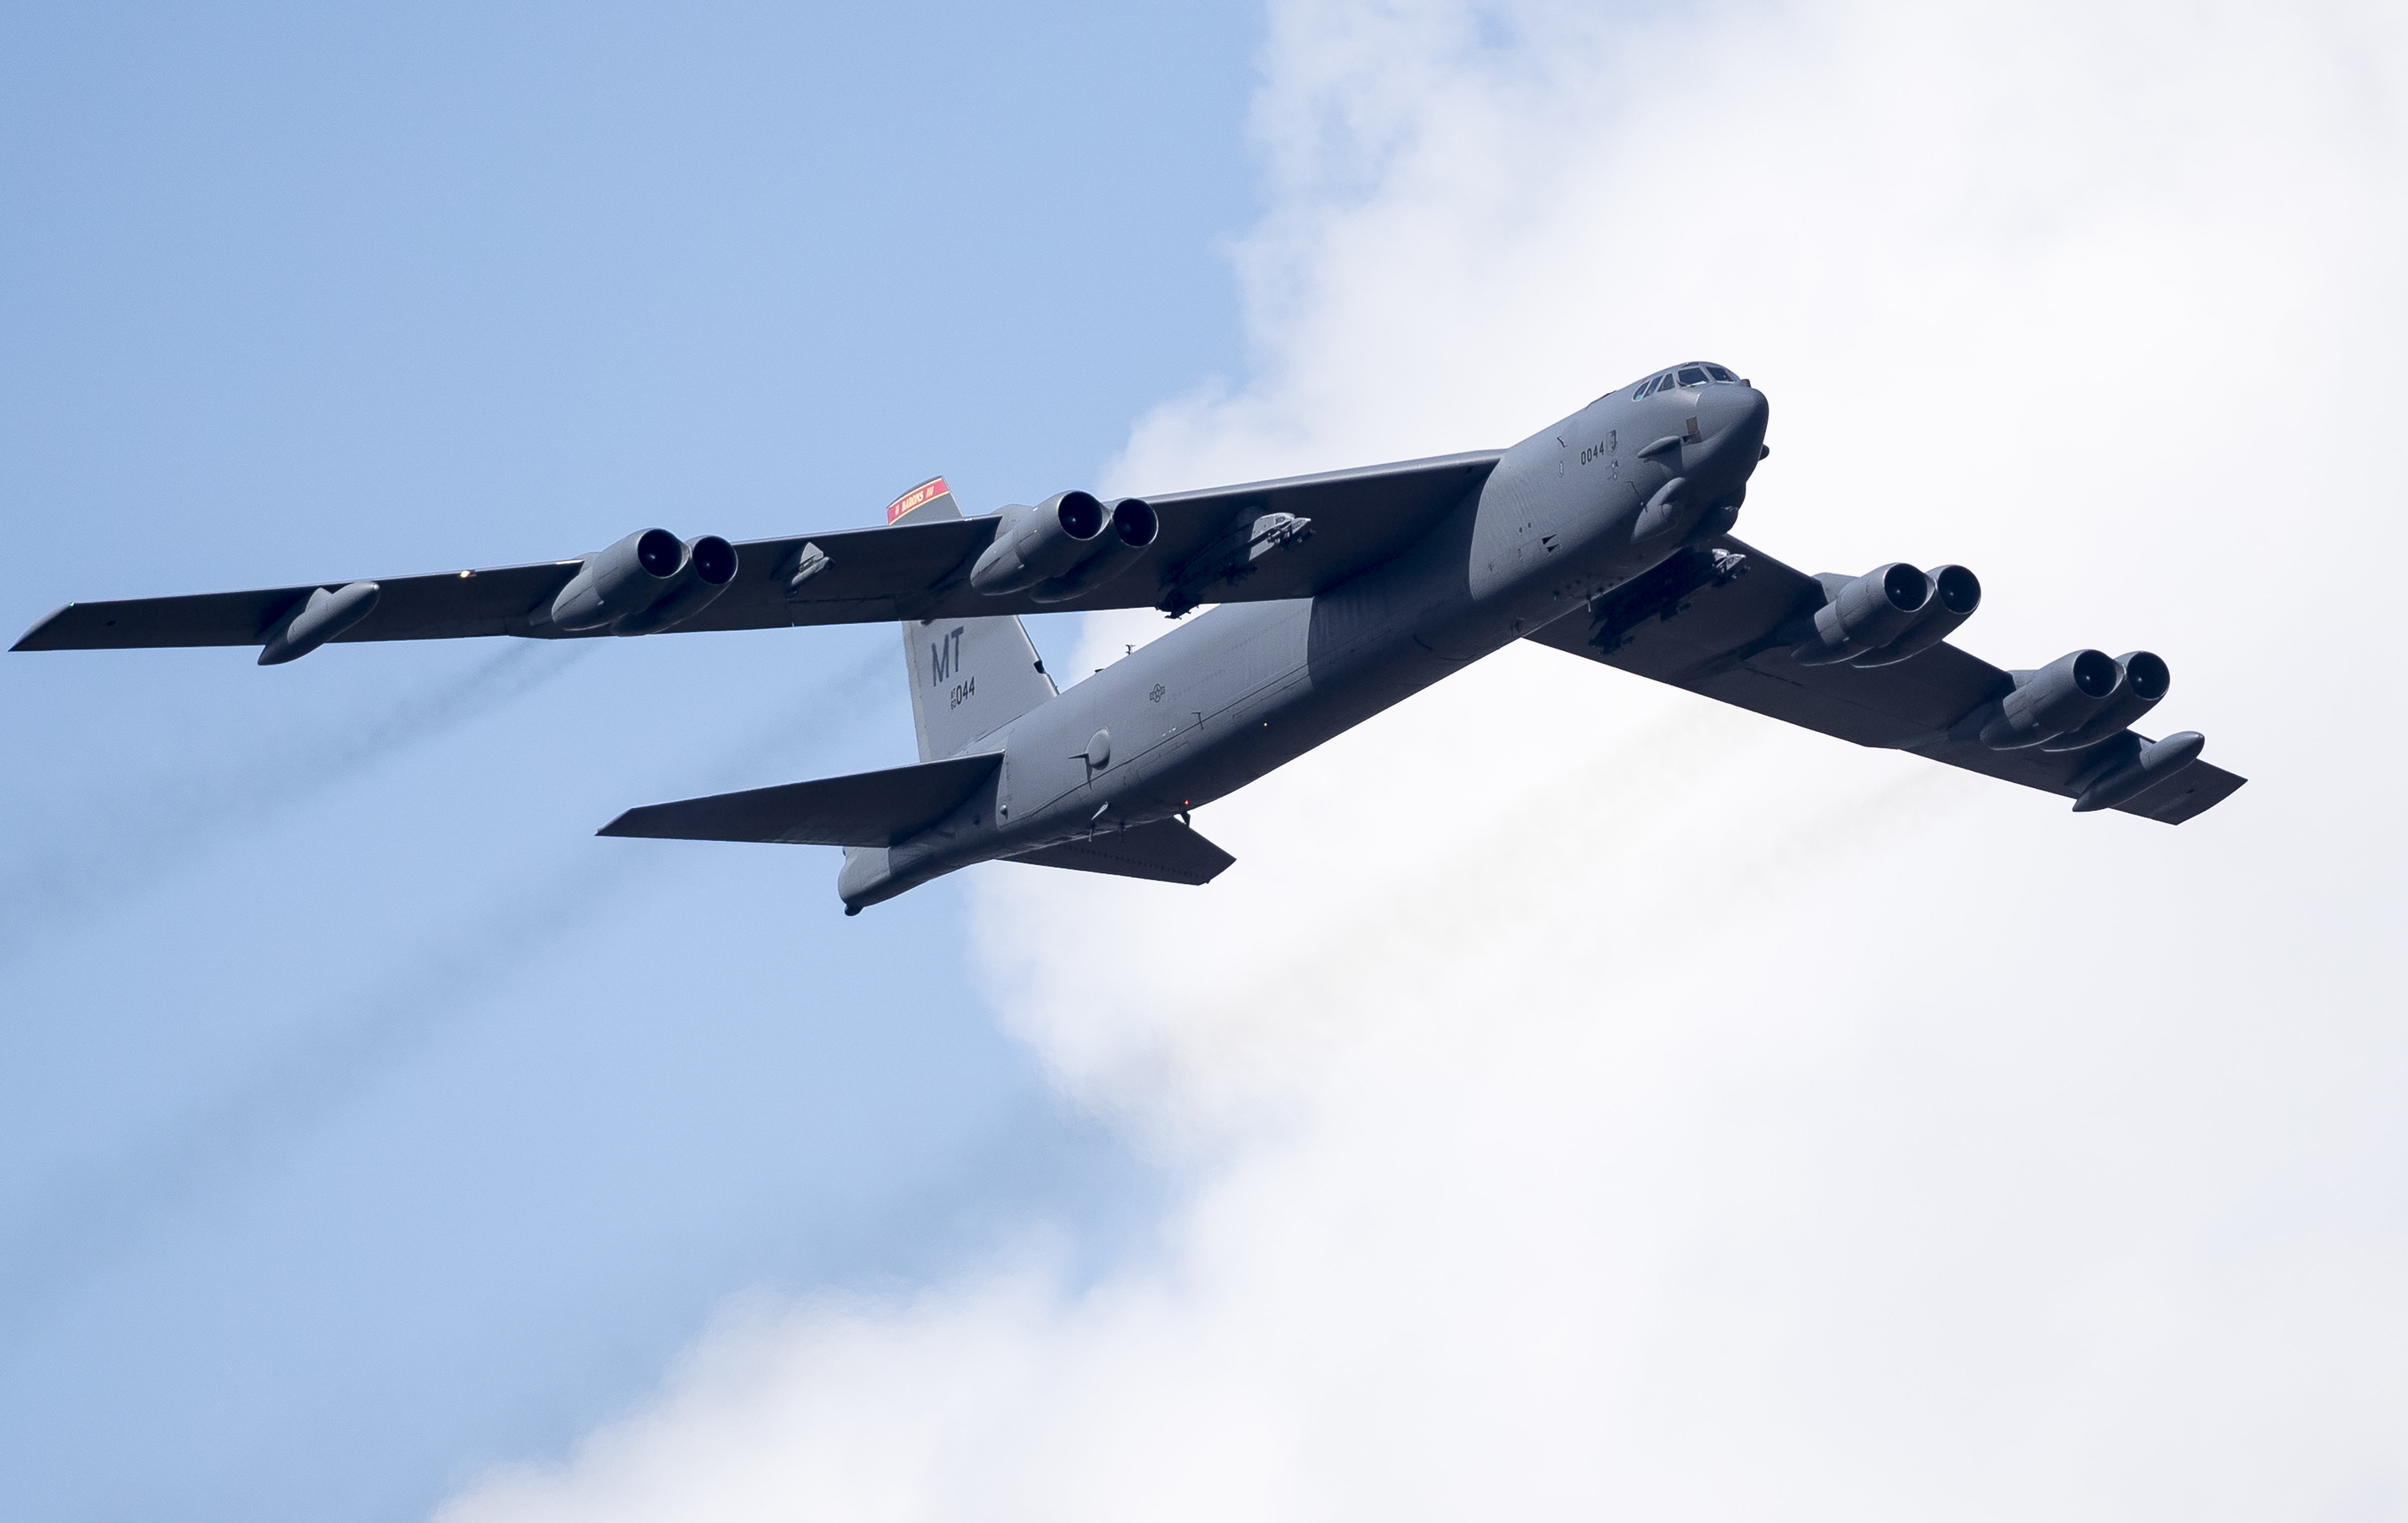 A U.S. Air Force B-52 bomber flies over Training Range in Pabrade during a military exercise 'Iron Wolf 2016' some 60km.(38 miles) north of the capital Vilnius, Lithuania, Thursday, June 16, 2016